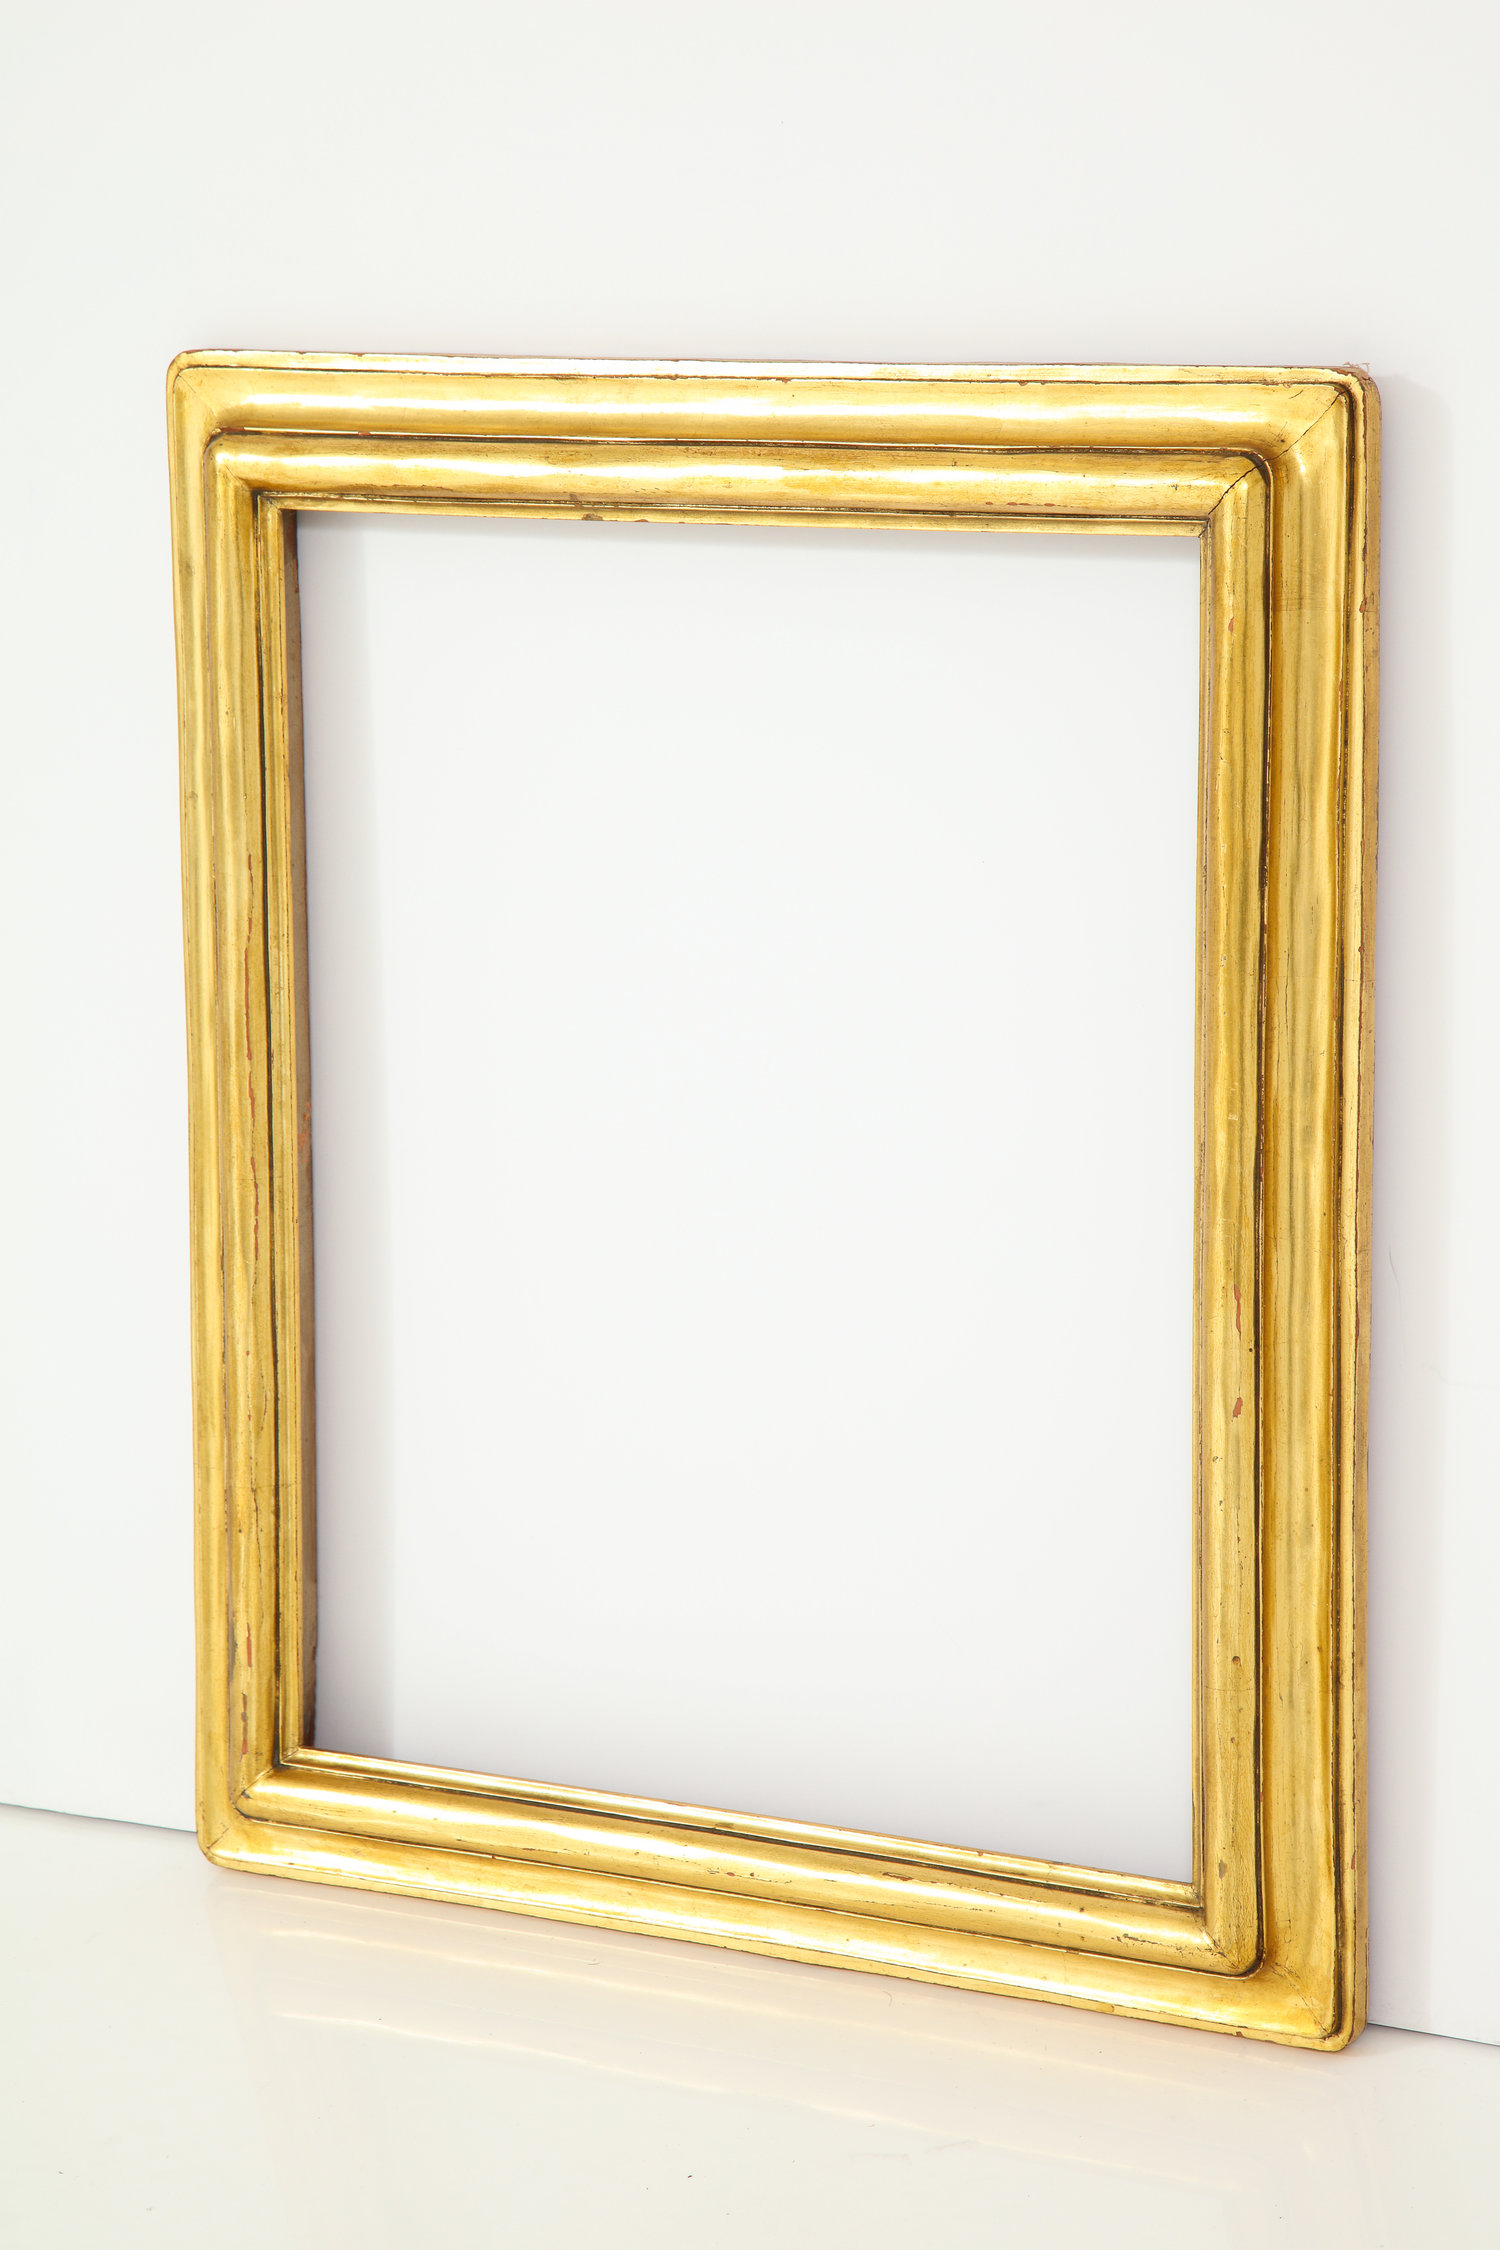 American Arts and Crafts Gilded Frame by Foster Brothers — Babou